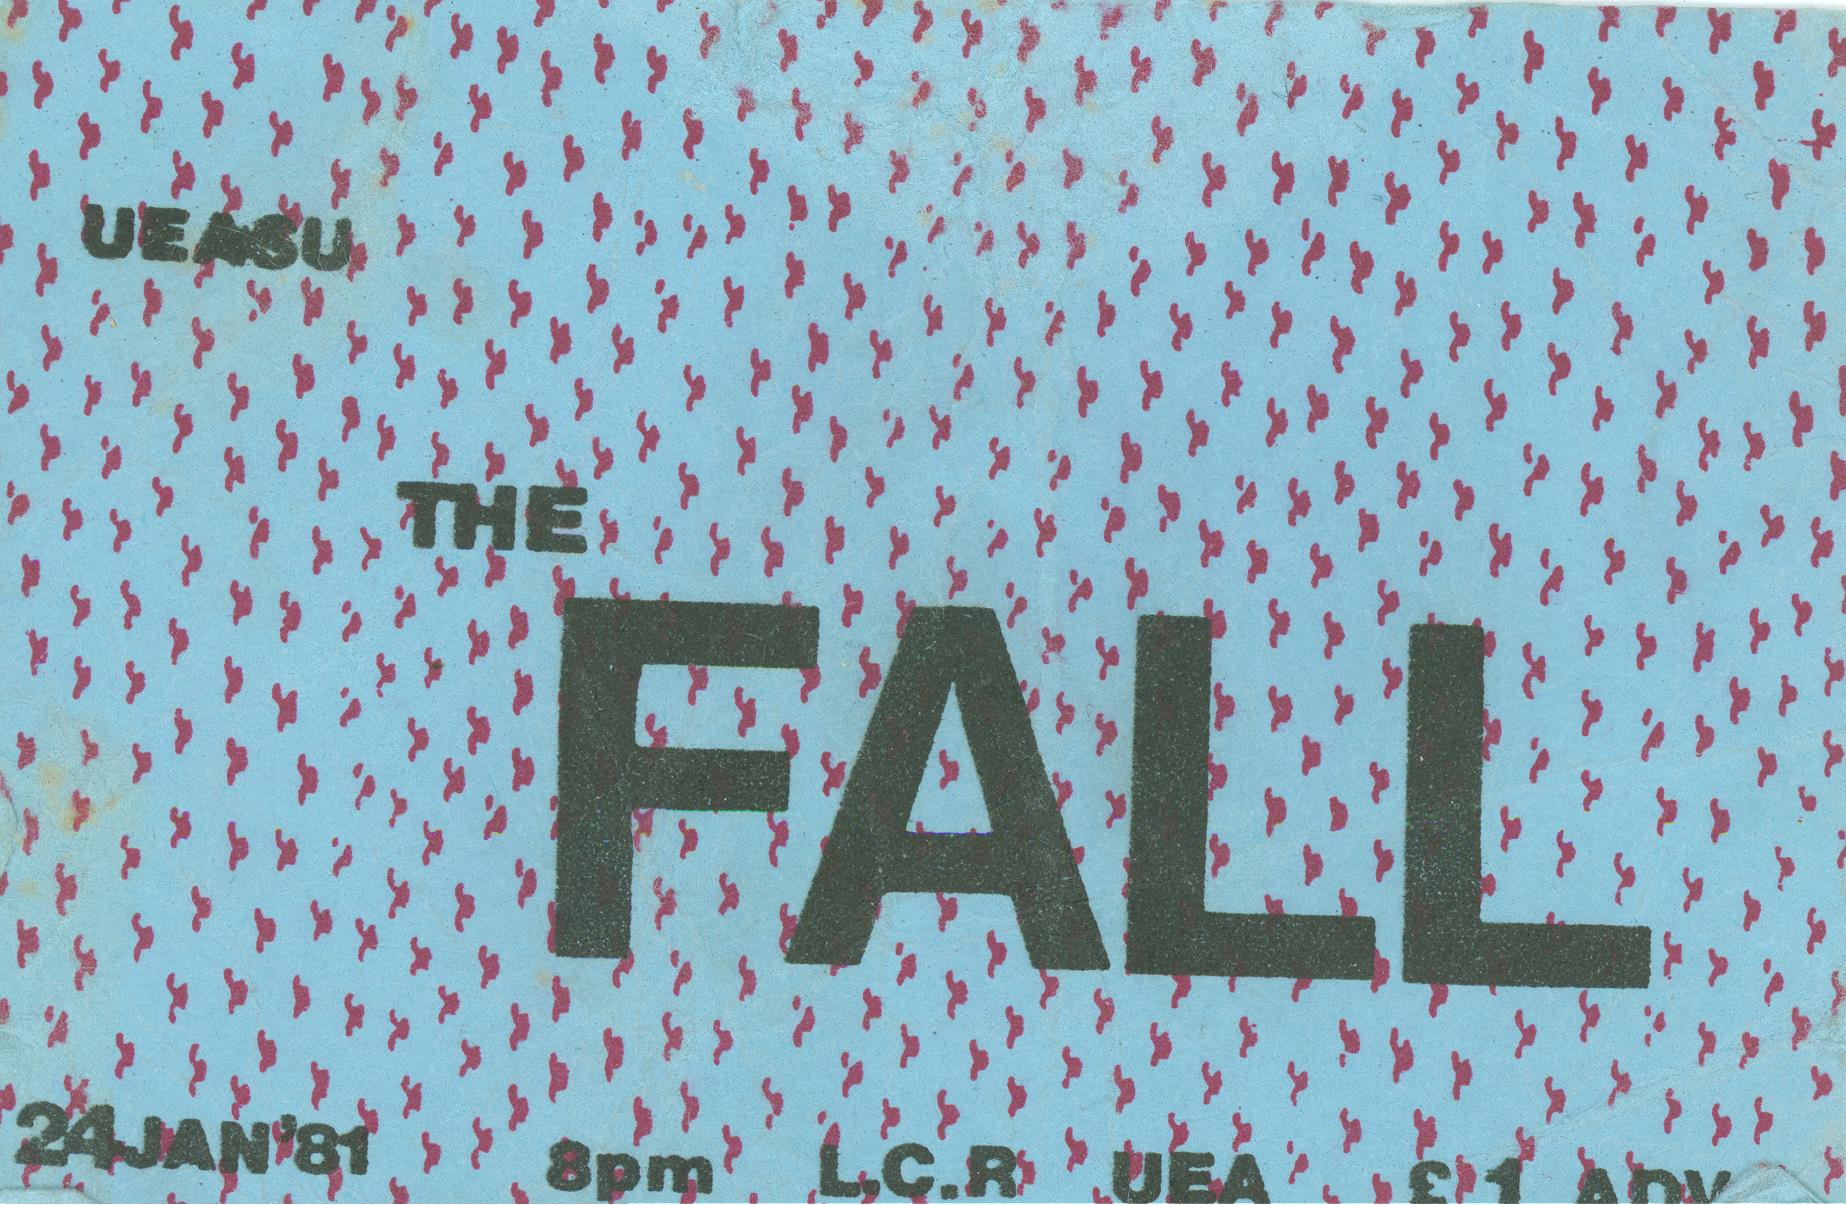 The Fall 1981